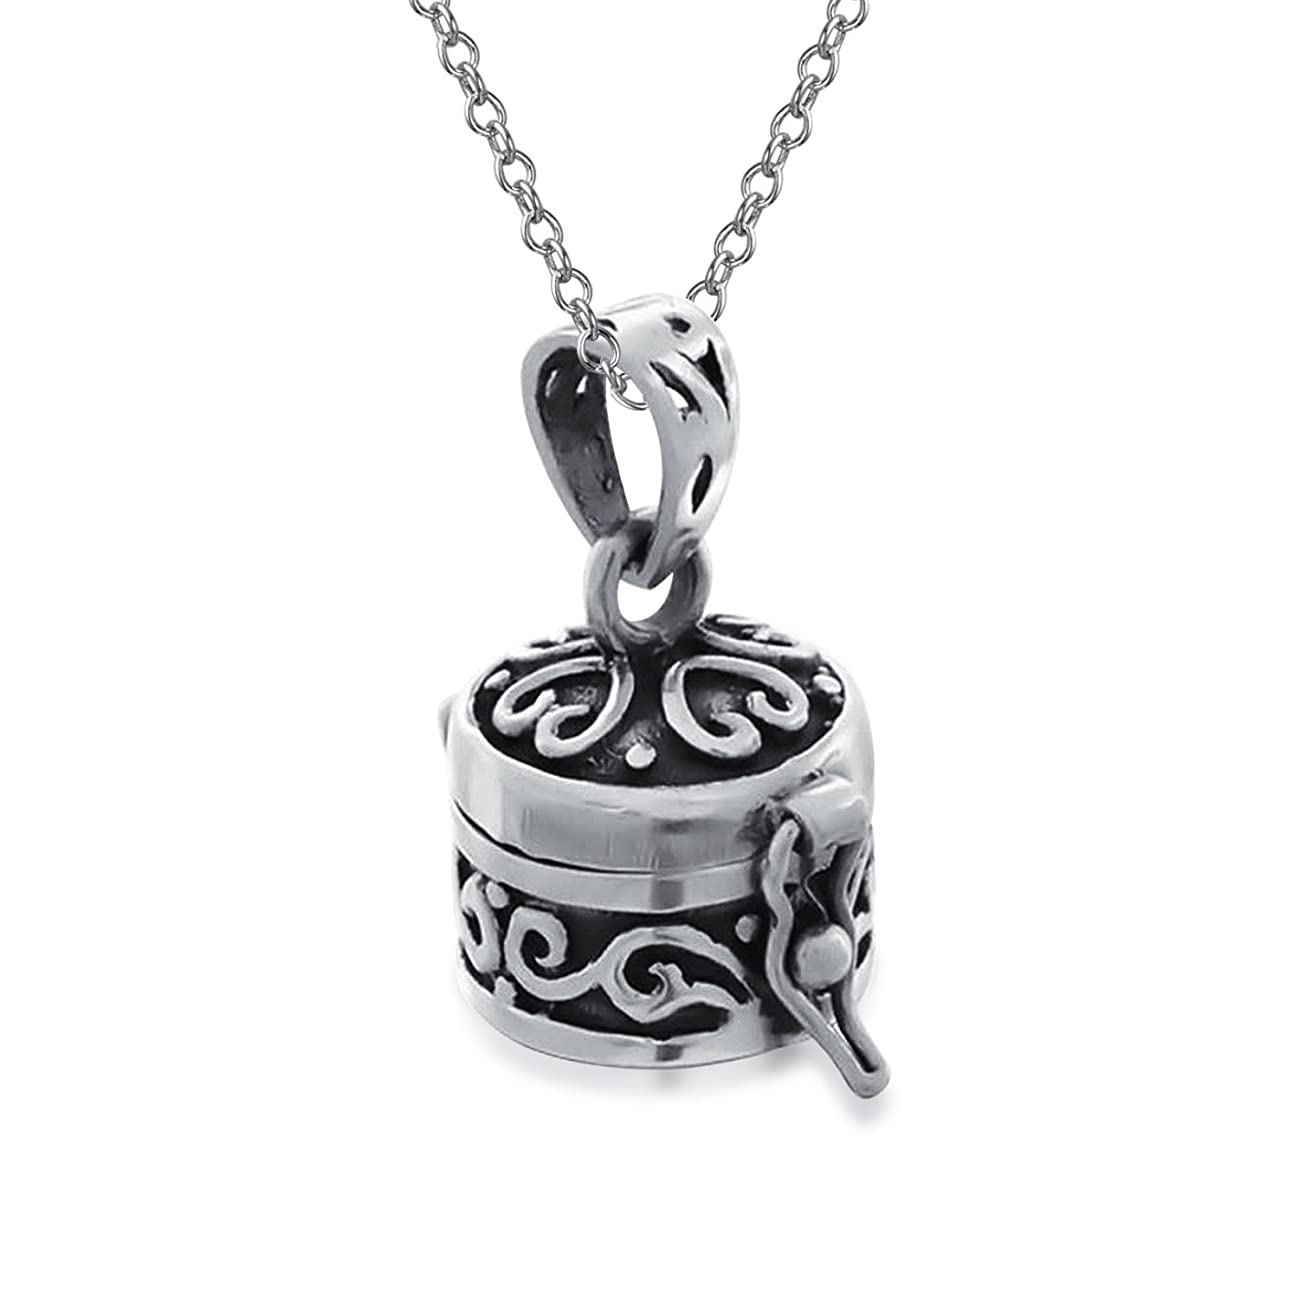 Cross Prayer Round Box Locket Keepsake Pendant For Women Black Oxidized 925 Sterling Silver Necklace With Chain